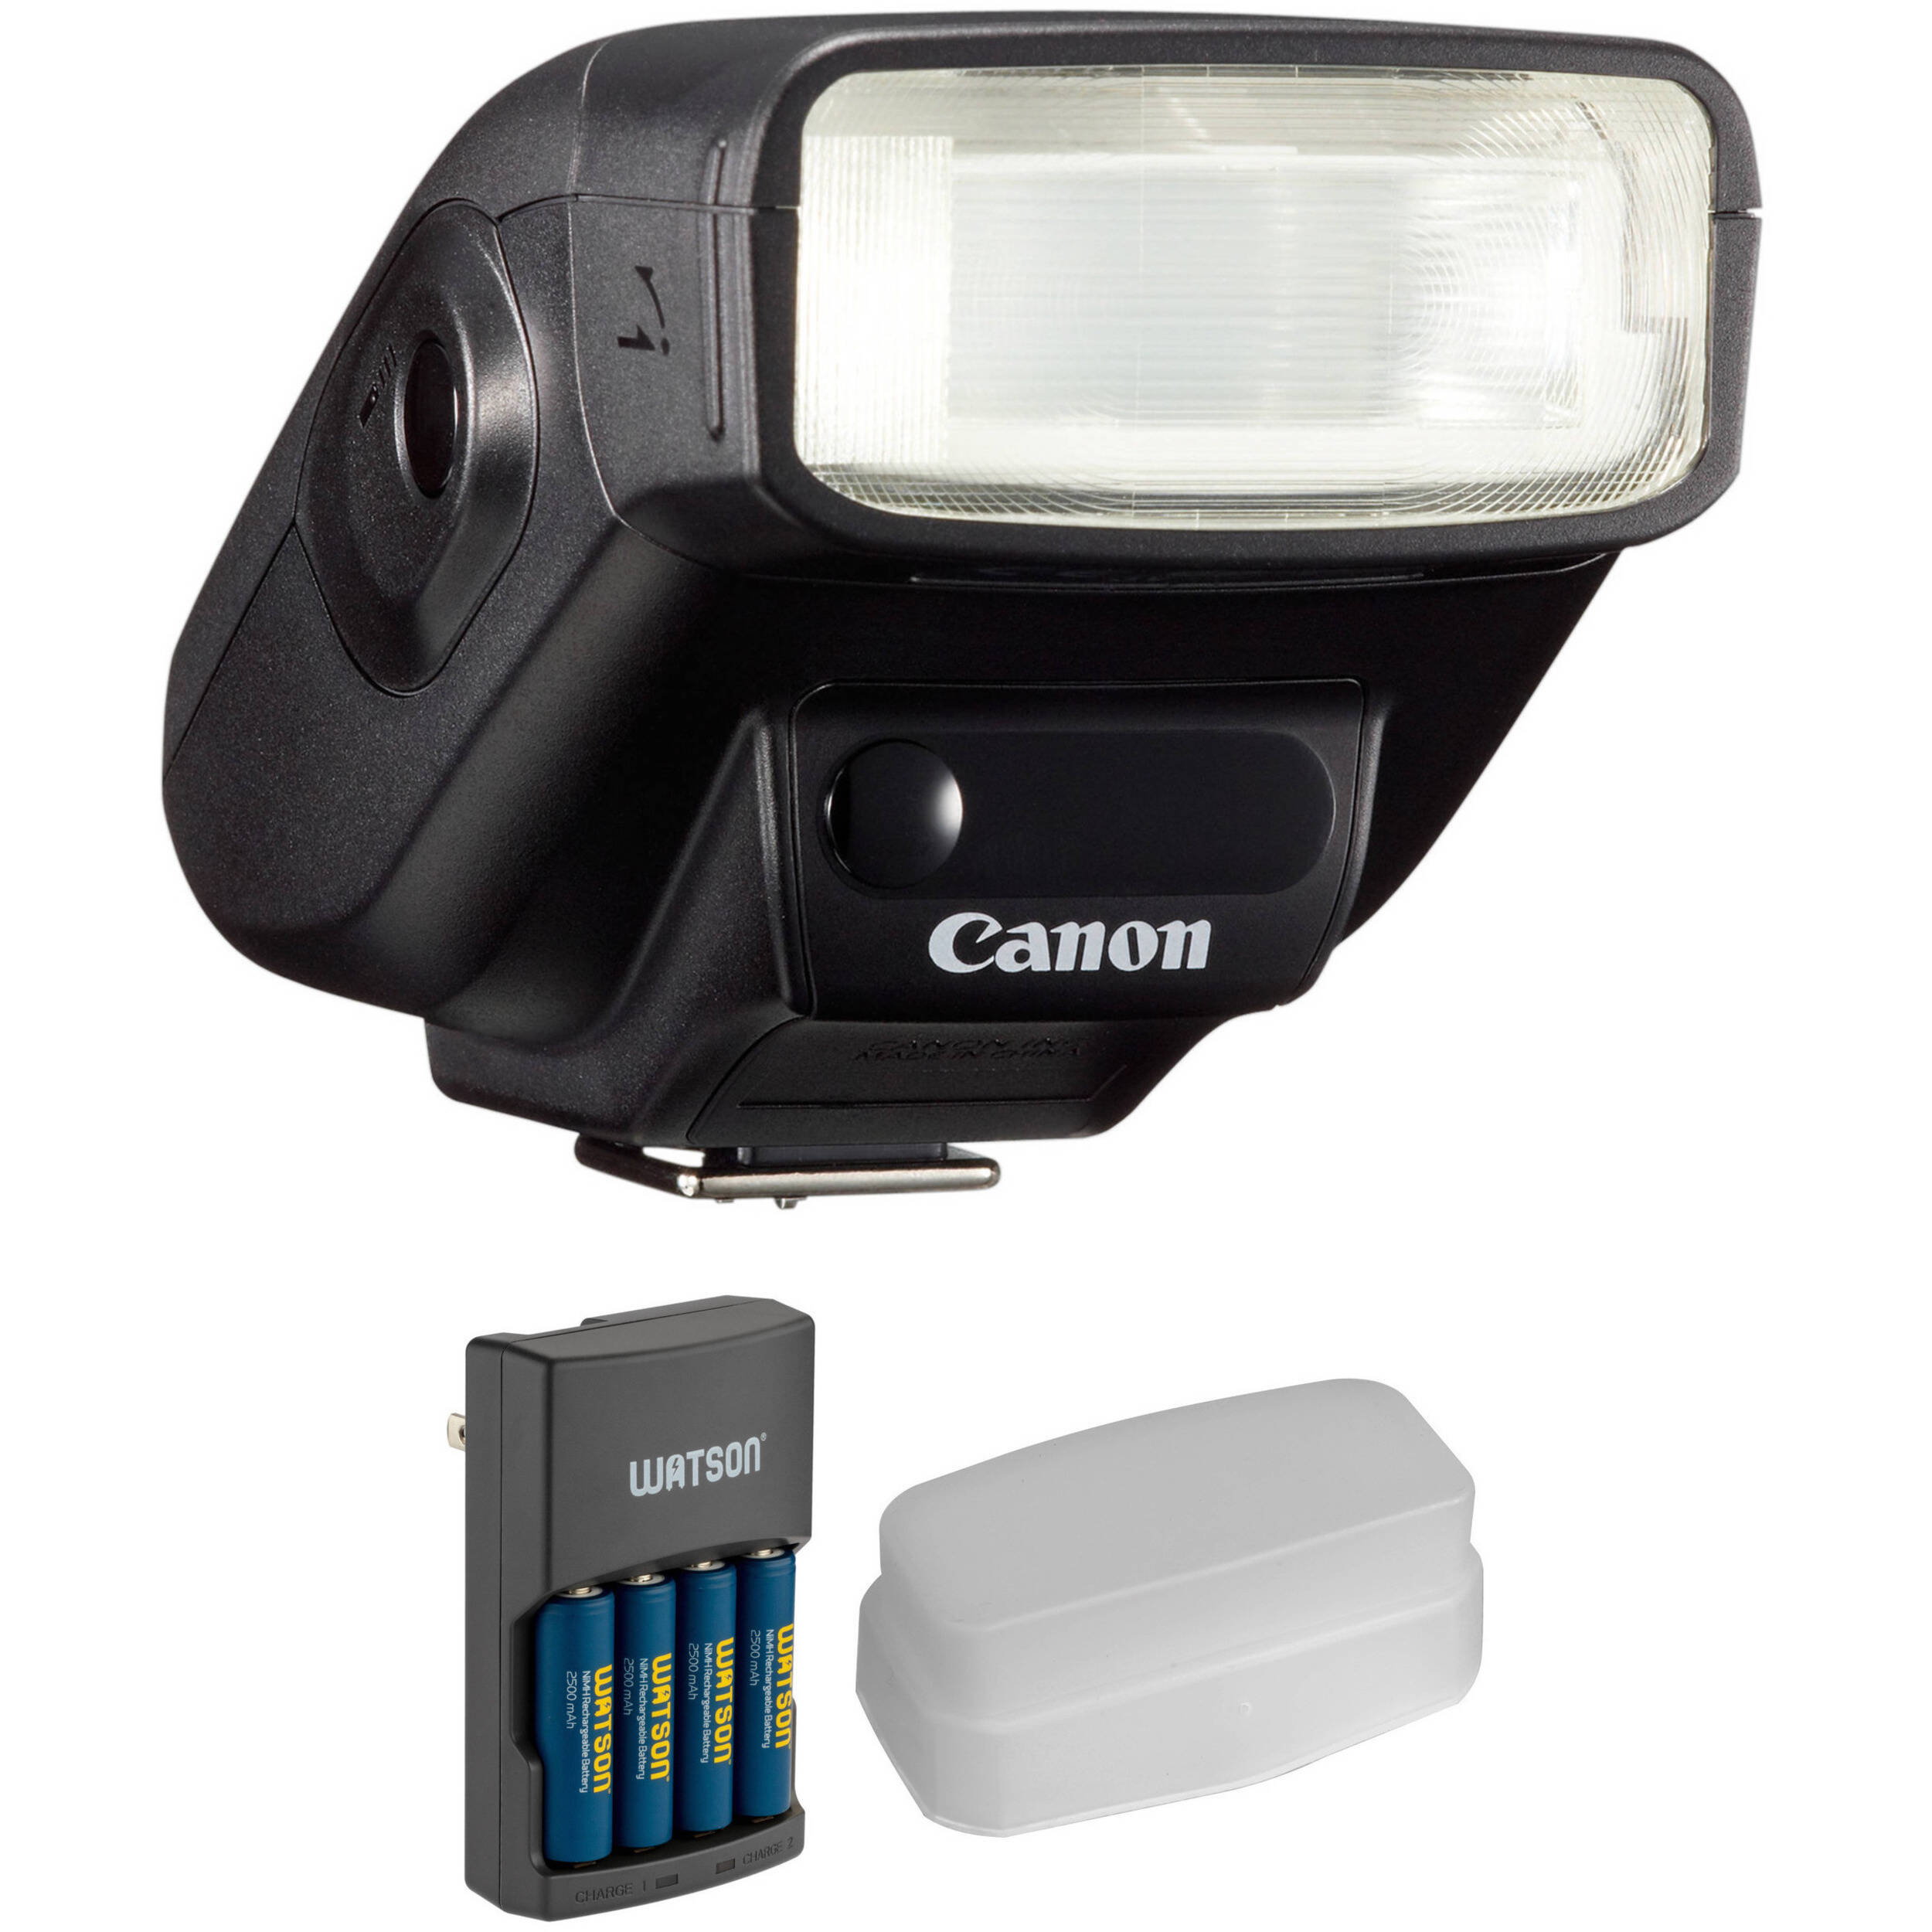 canon speedlite 270ex ii essential kit b h photo video rh bhphotovideo com User Guide Template Example User Guide